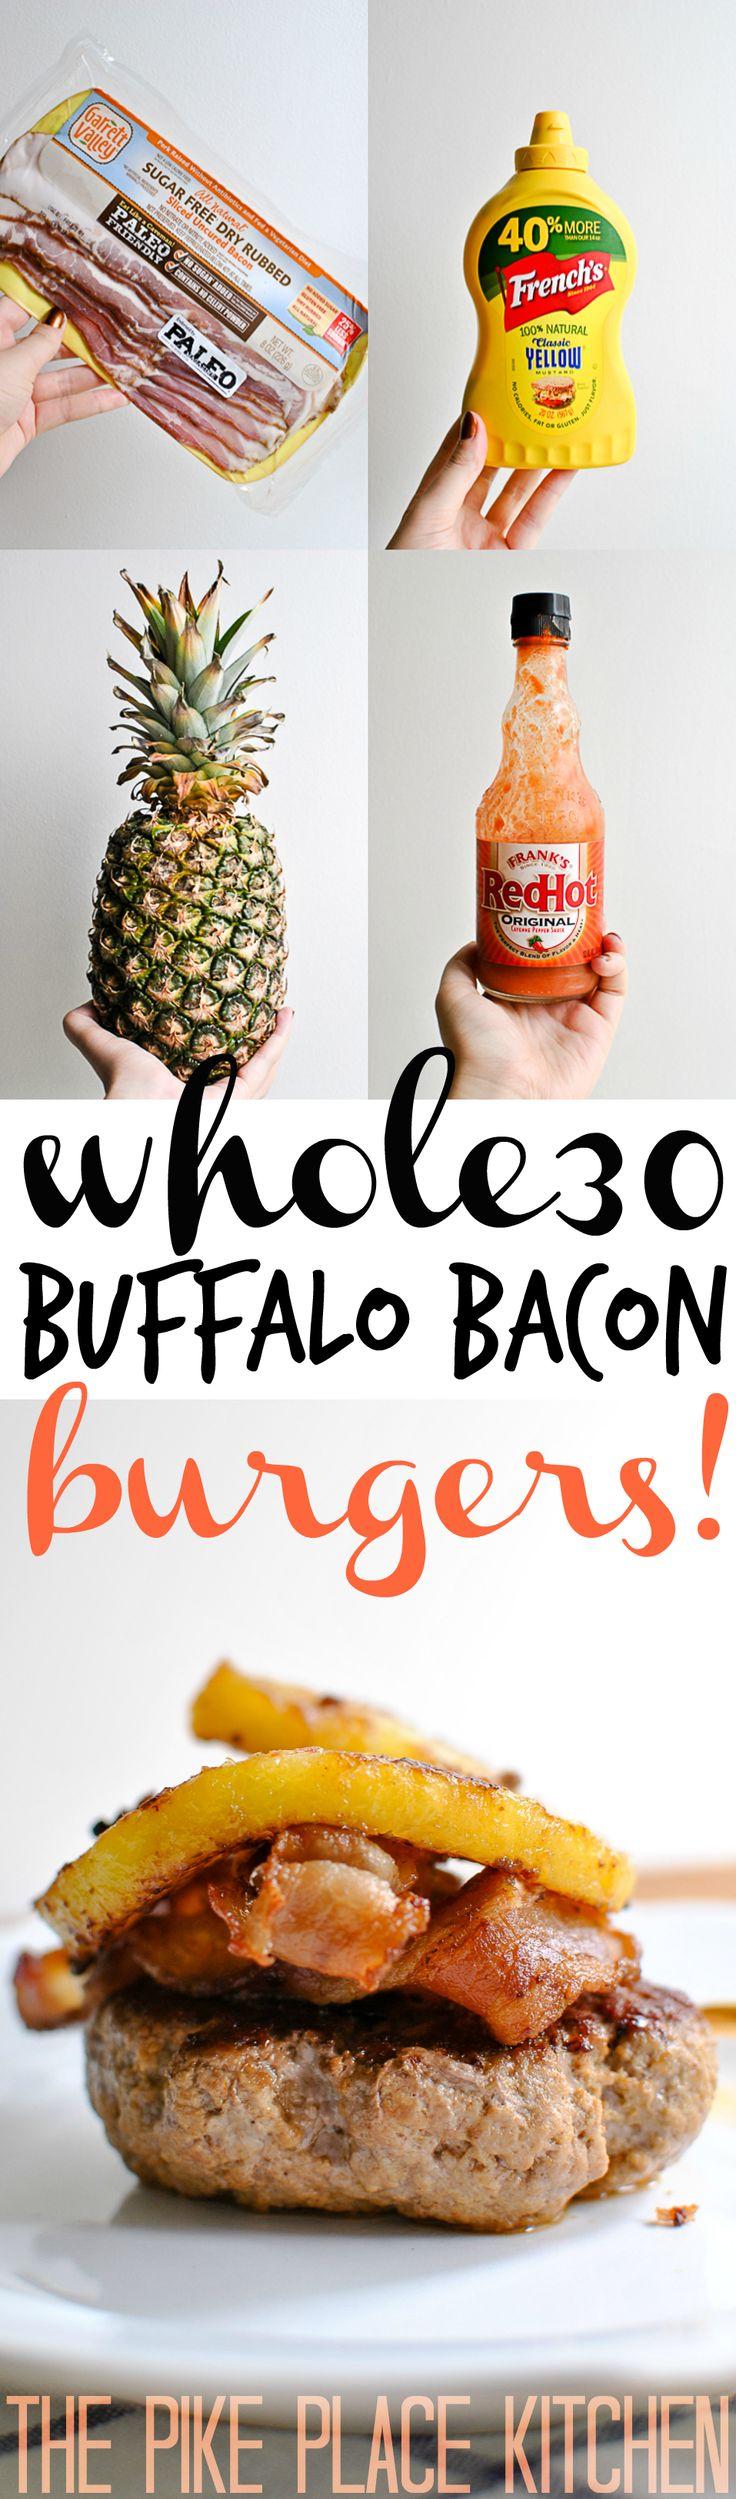 the BEST whole30 burgers around!   these buffalo bacon burgers are bursting with flavor and topped with crunchy bacon & carmelized pineapple.  YUM. take my word for it! | thepikeplacekitchen.com